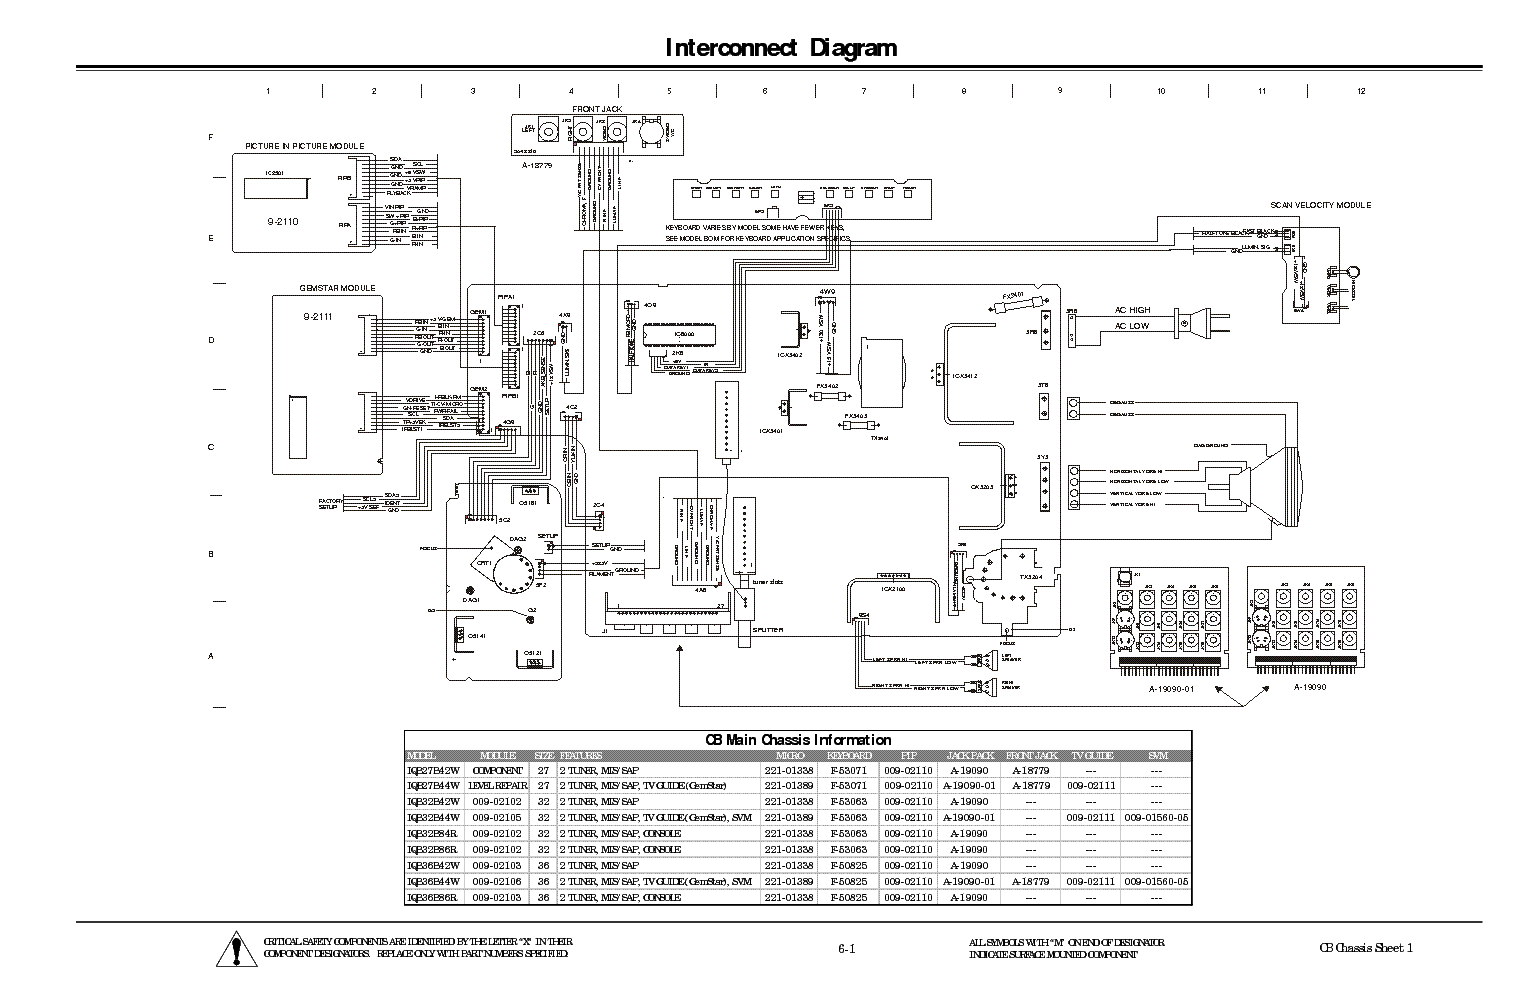 69 Marshall Schemas additionally Zenith furthermore 6cl6schematic further Vintage Record Player Wiring Diagram together with 6cl6schematic. on zenith radio schematics